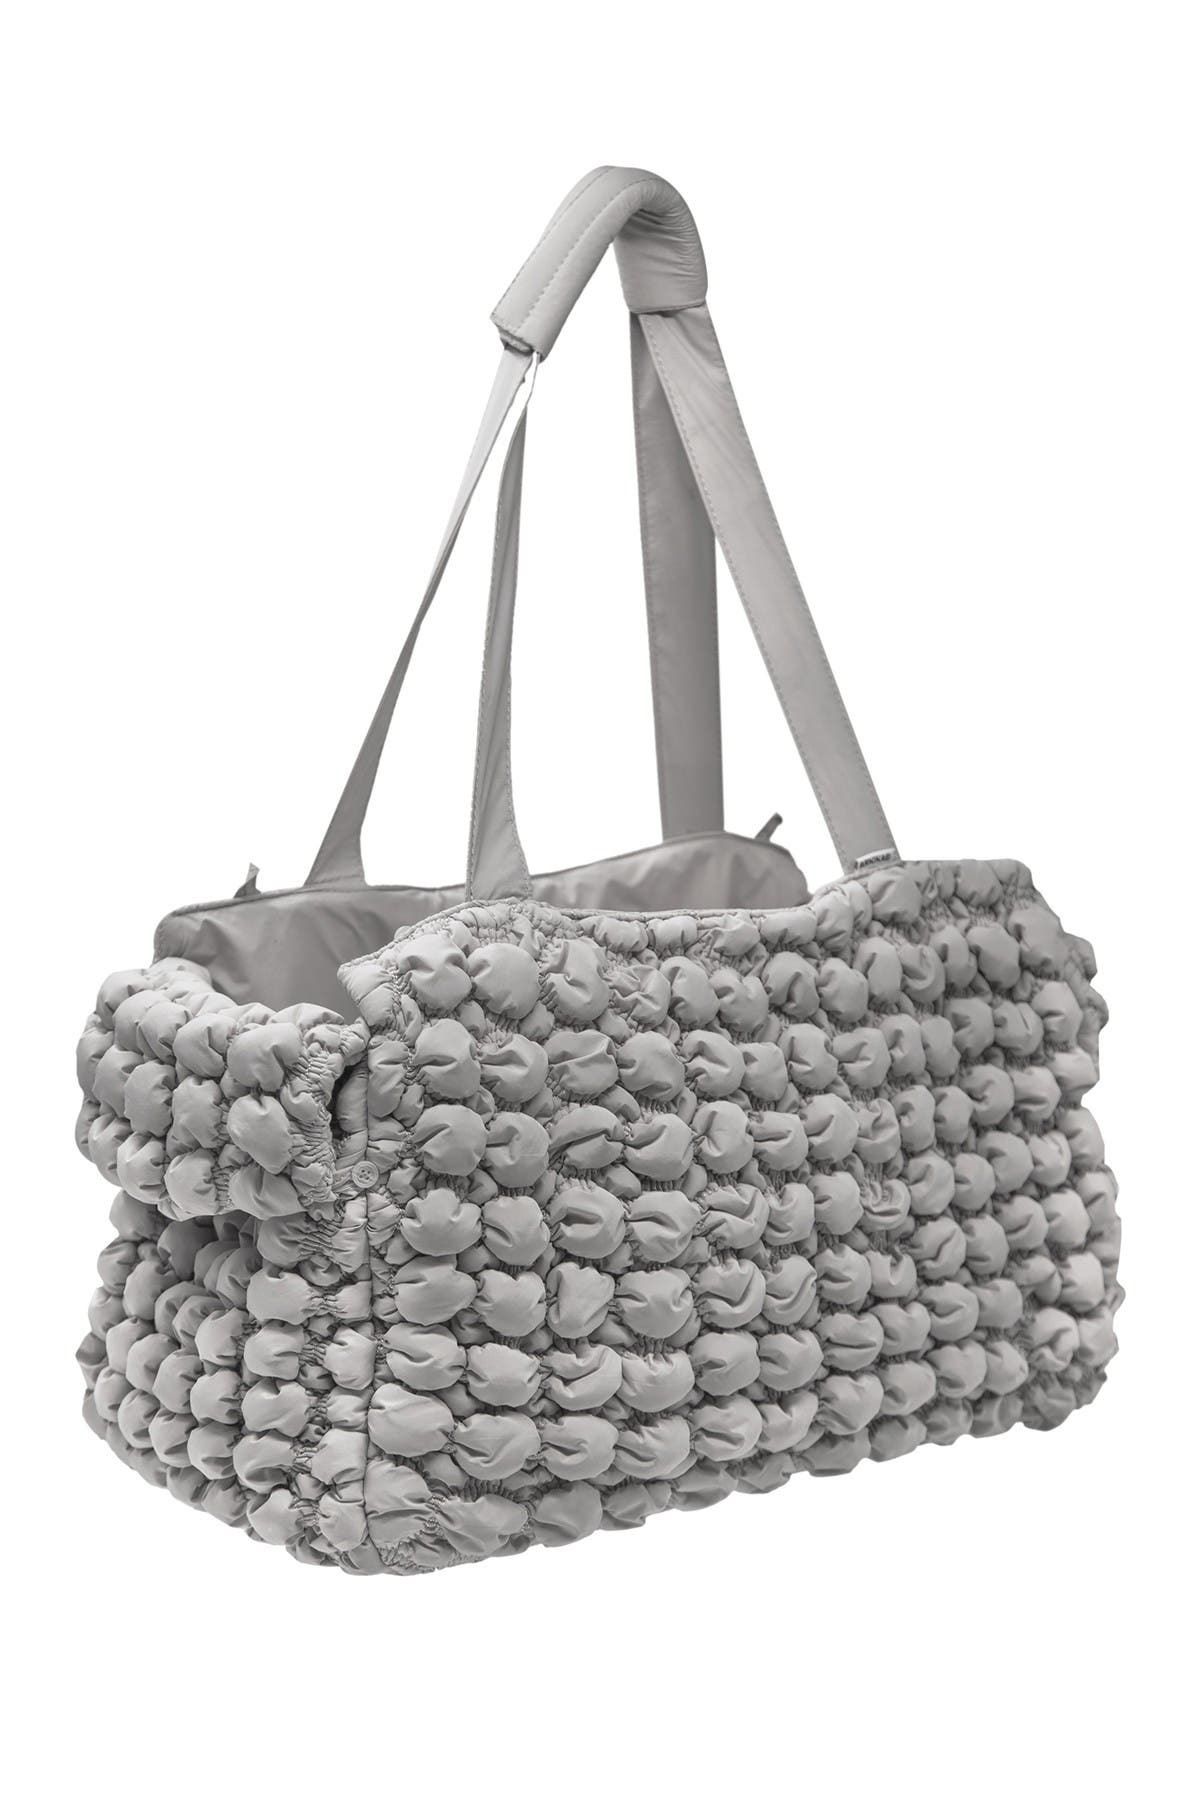 Image of Pet Life 'Bubble Vogue' Ultra-Plush Fashion Designer Pet Carrier